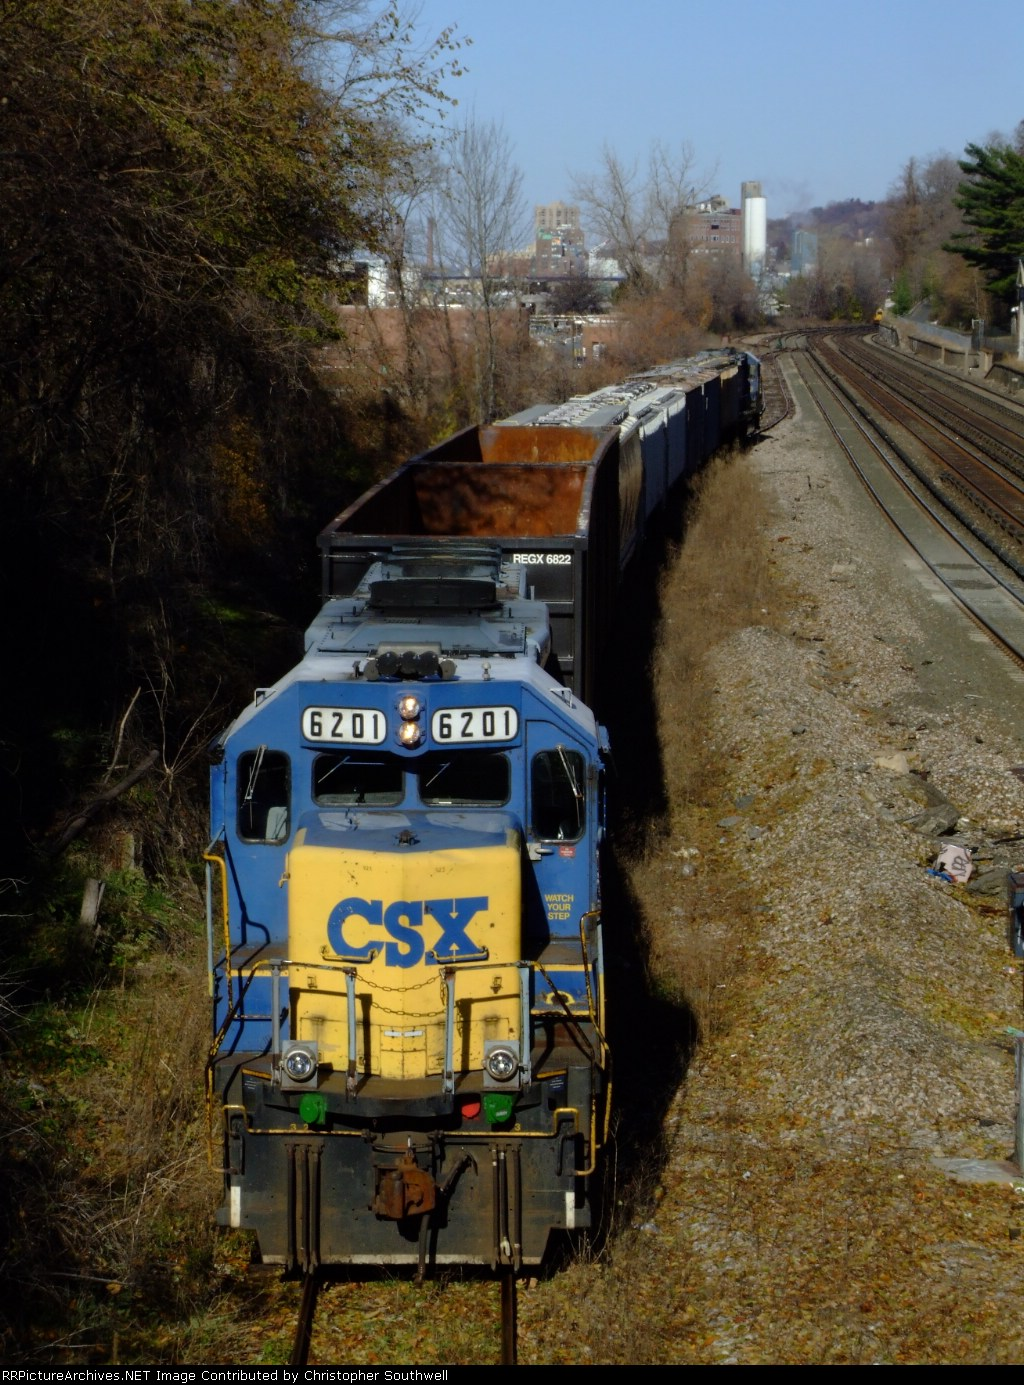 CSX B749 at the former NYC station near the bronx/westchester border